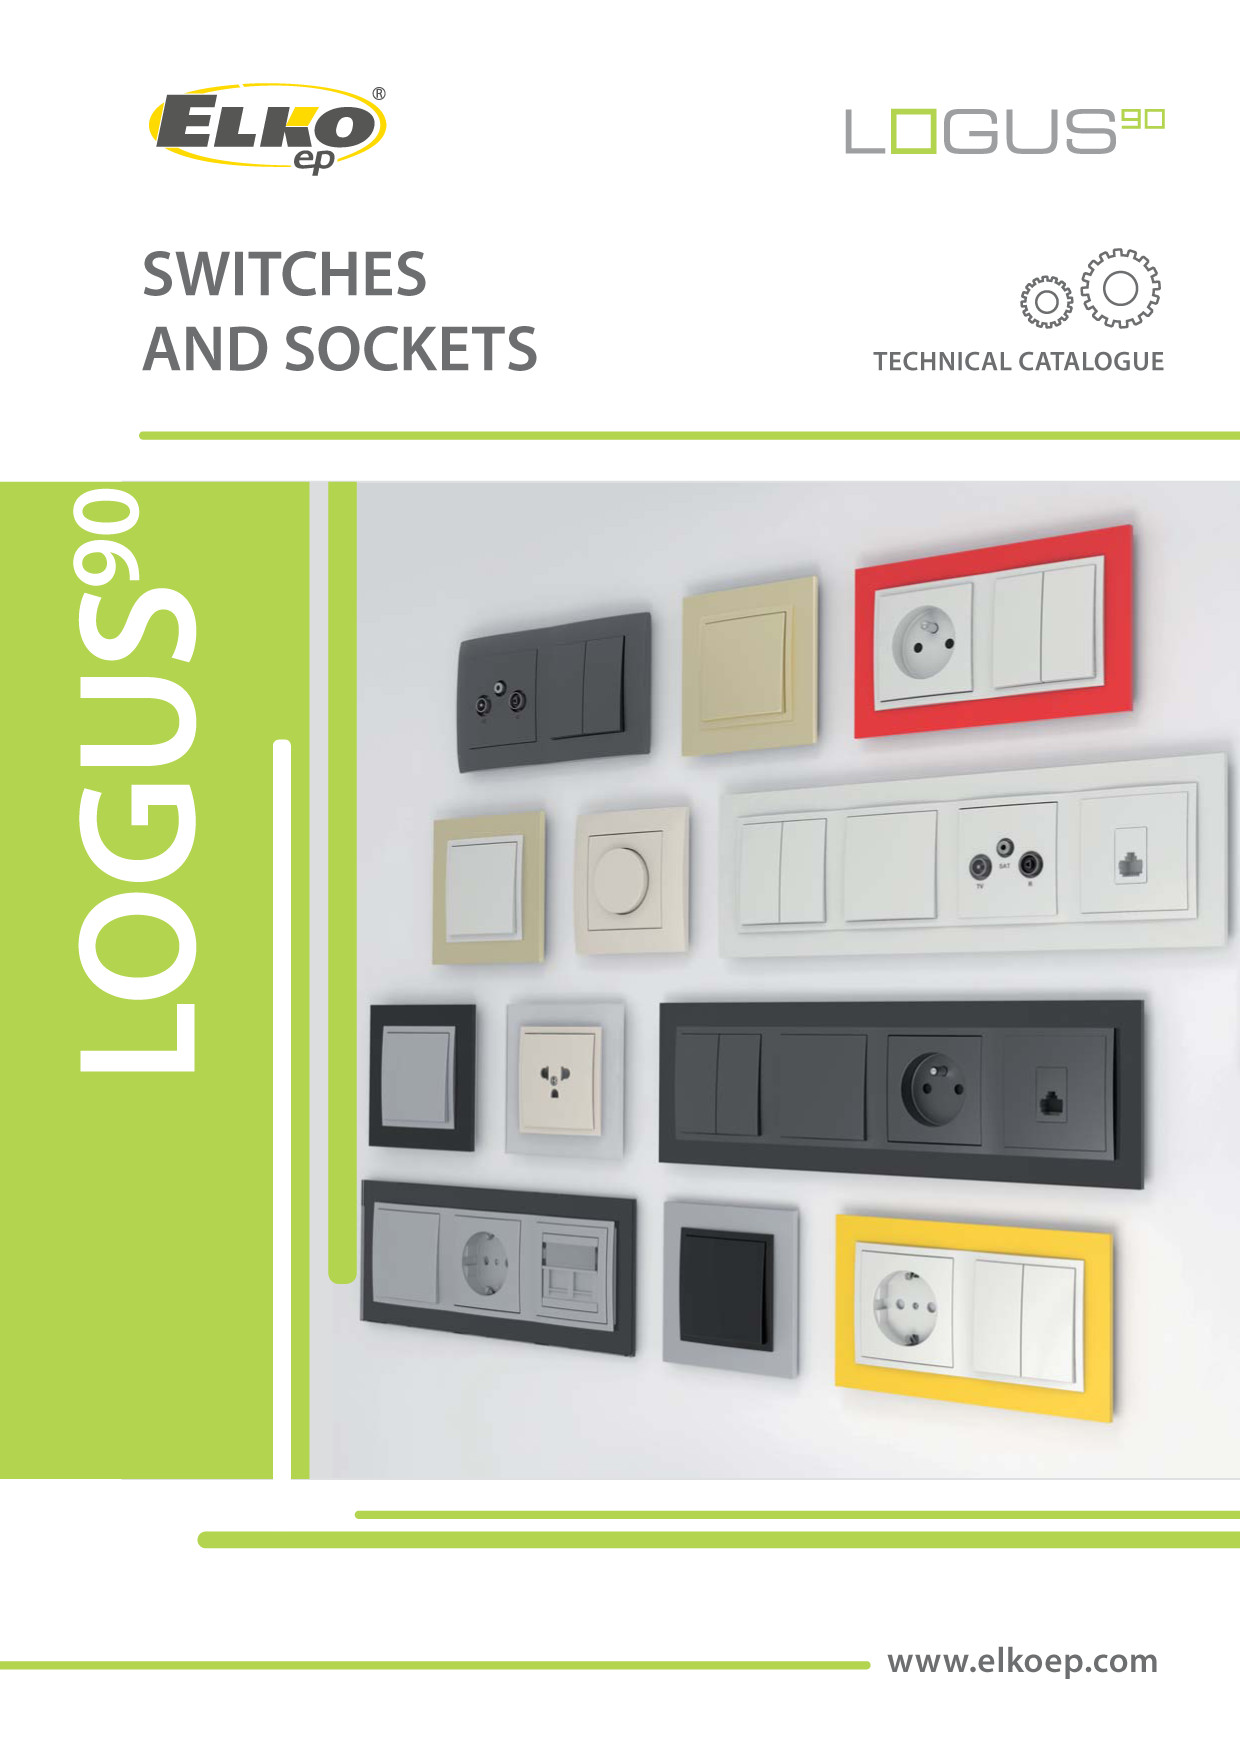 Switches and sockets preview